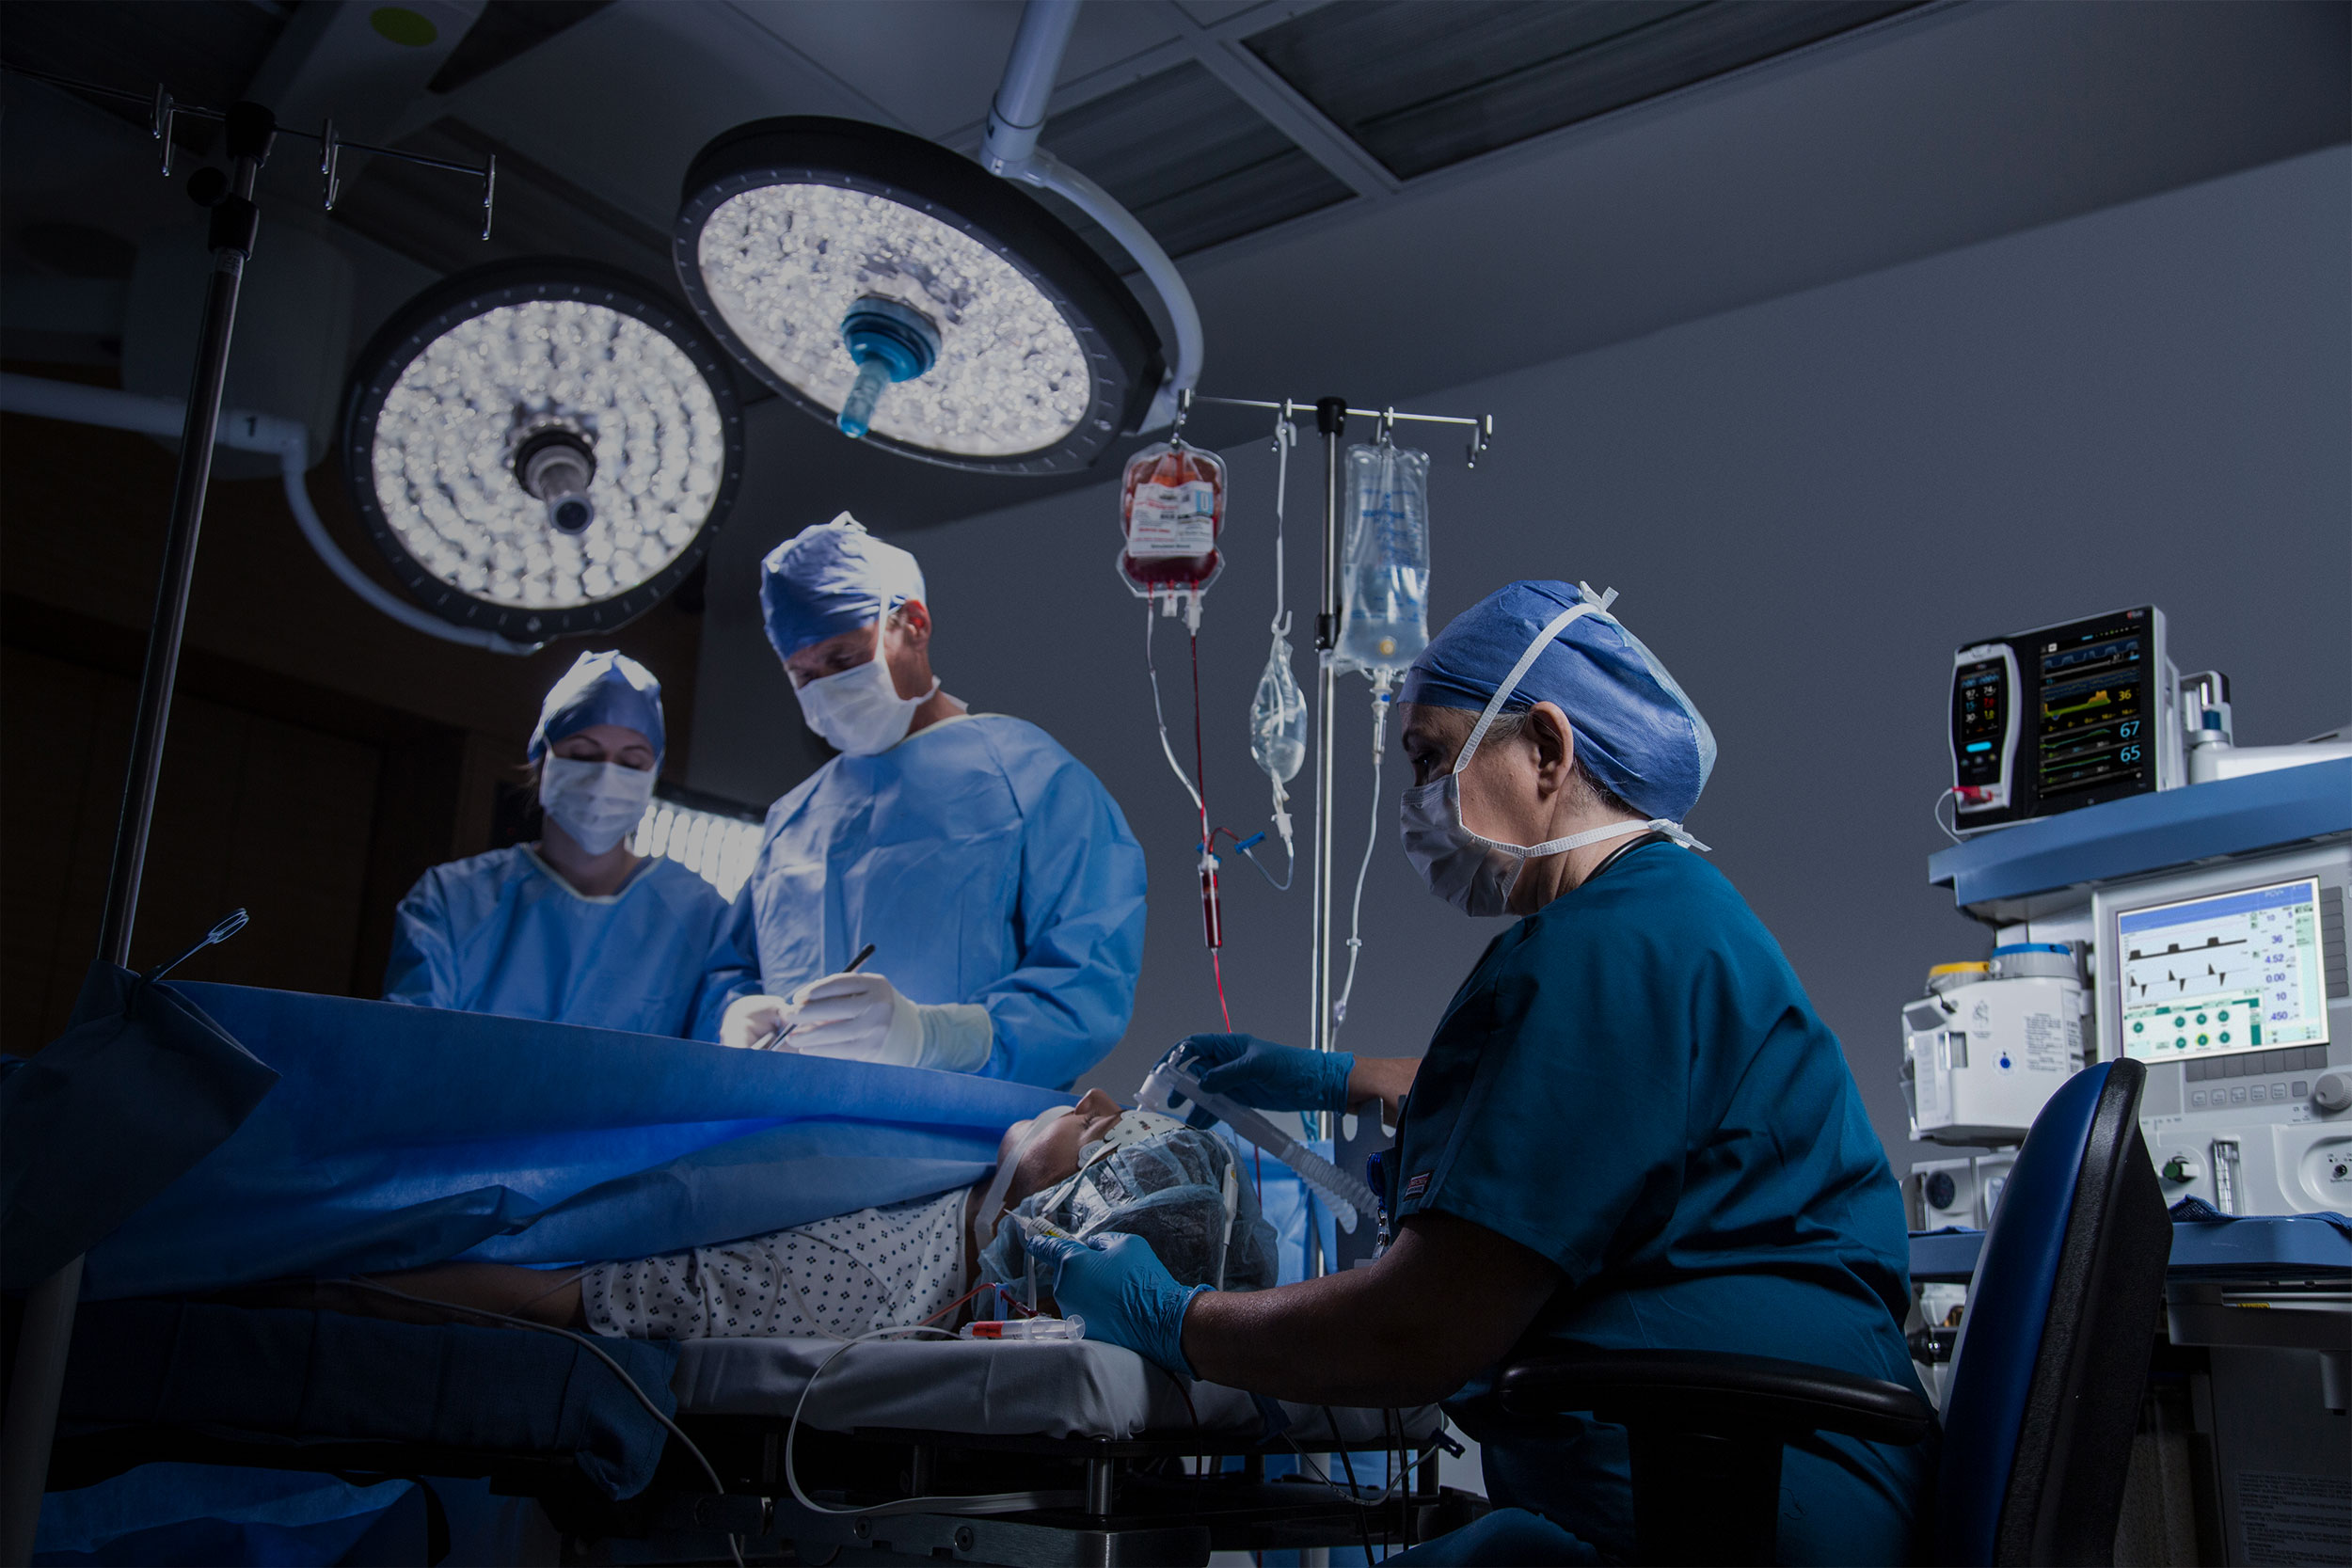 Masimo - Advanced Monitoring Solutions in the OR